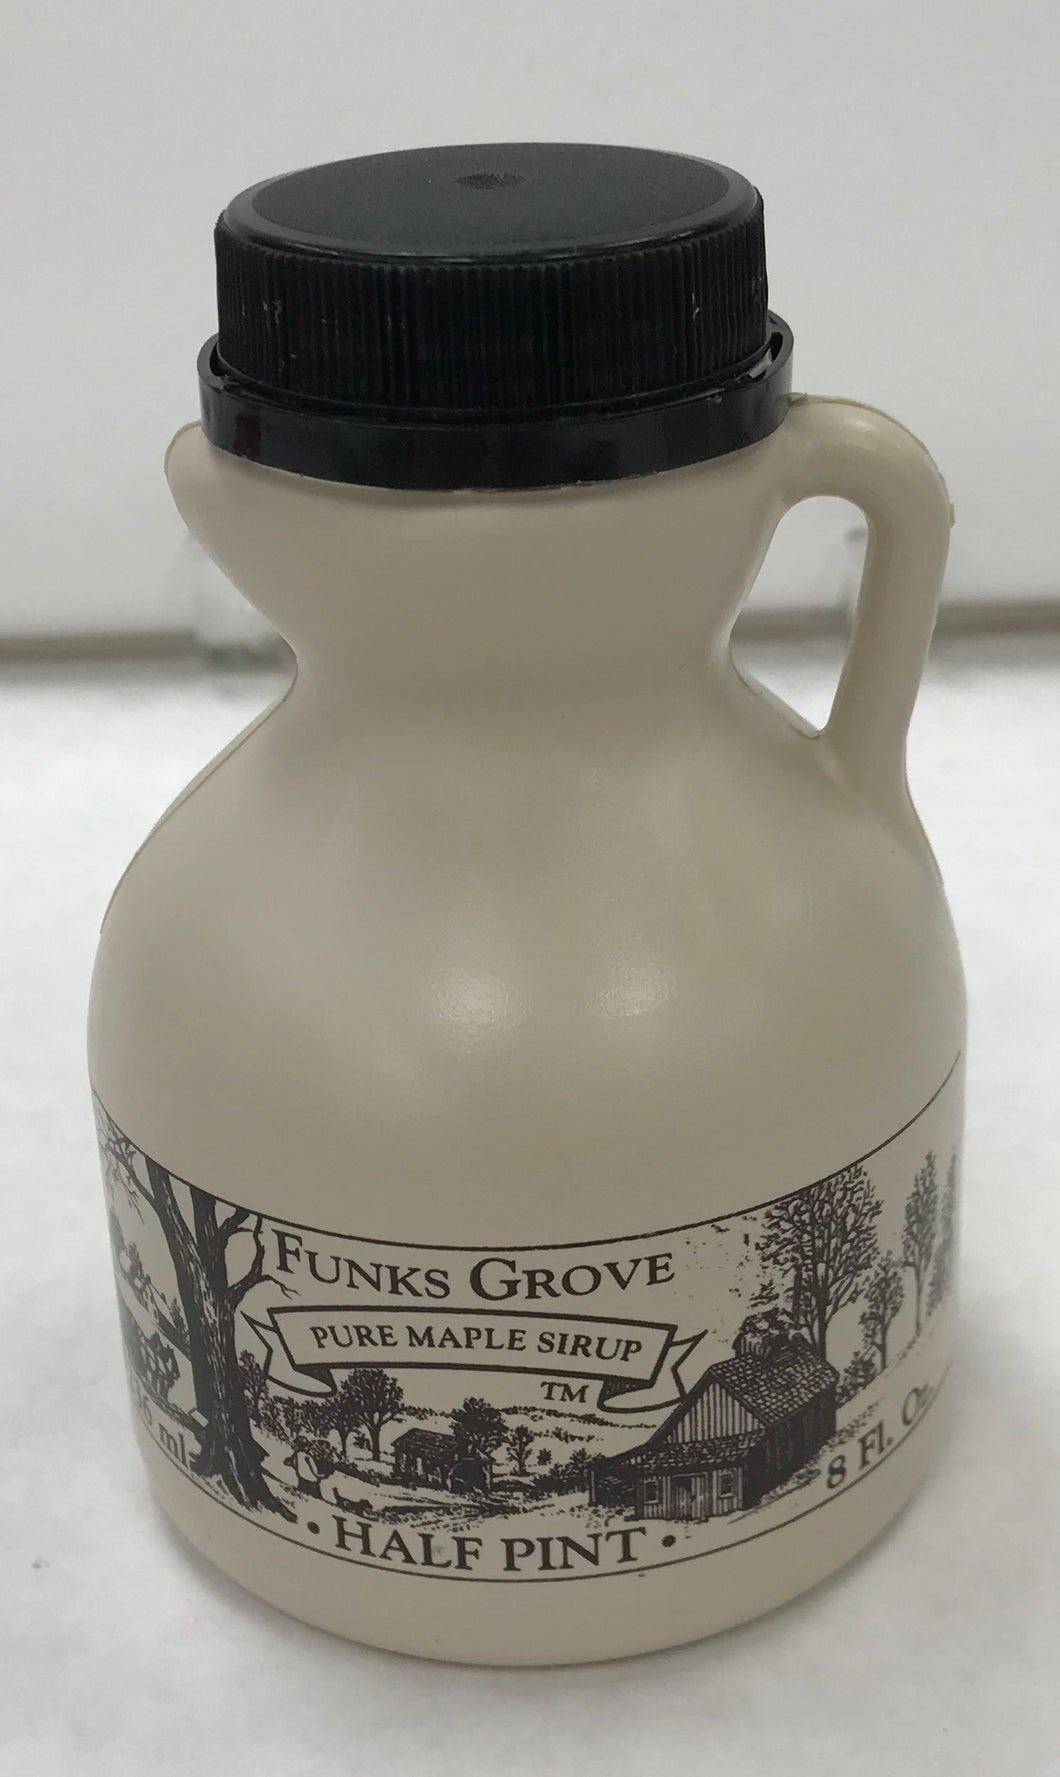 Funks Grove Maple Sirup - Half Pint